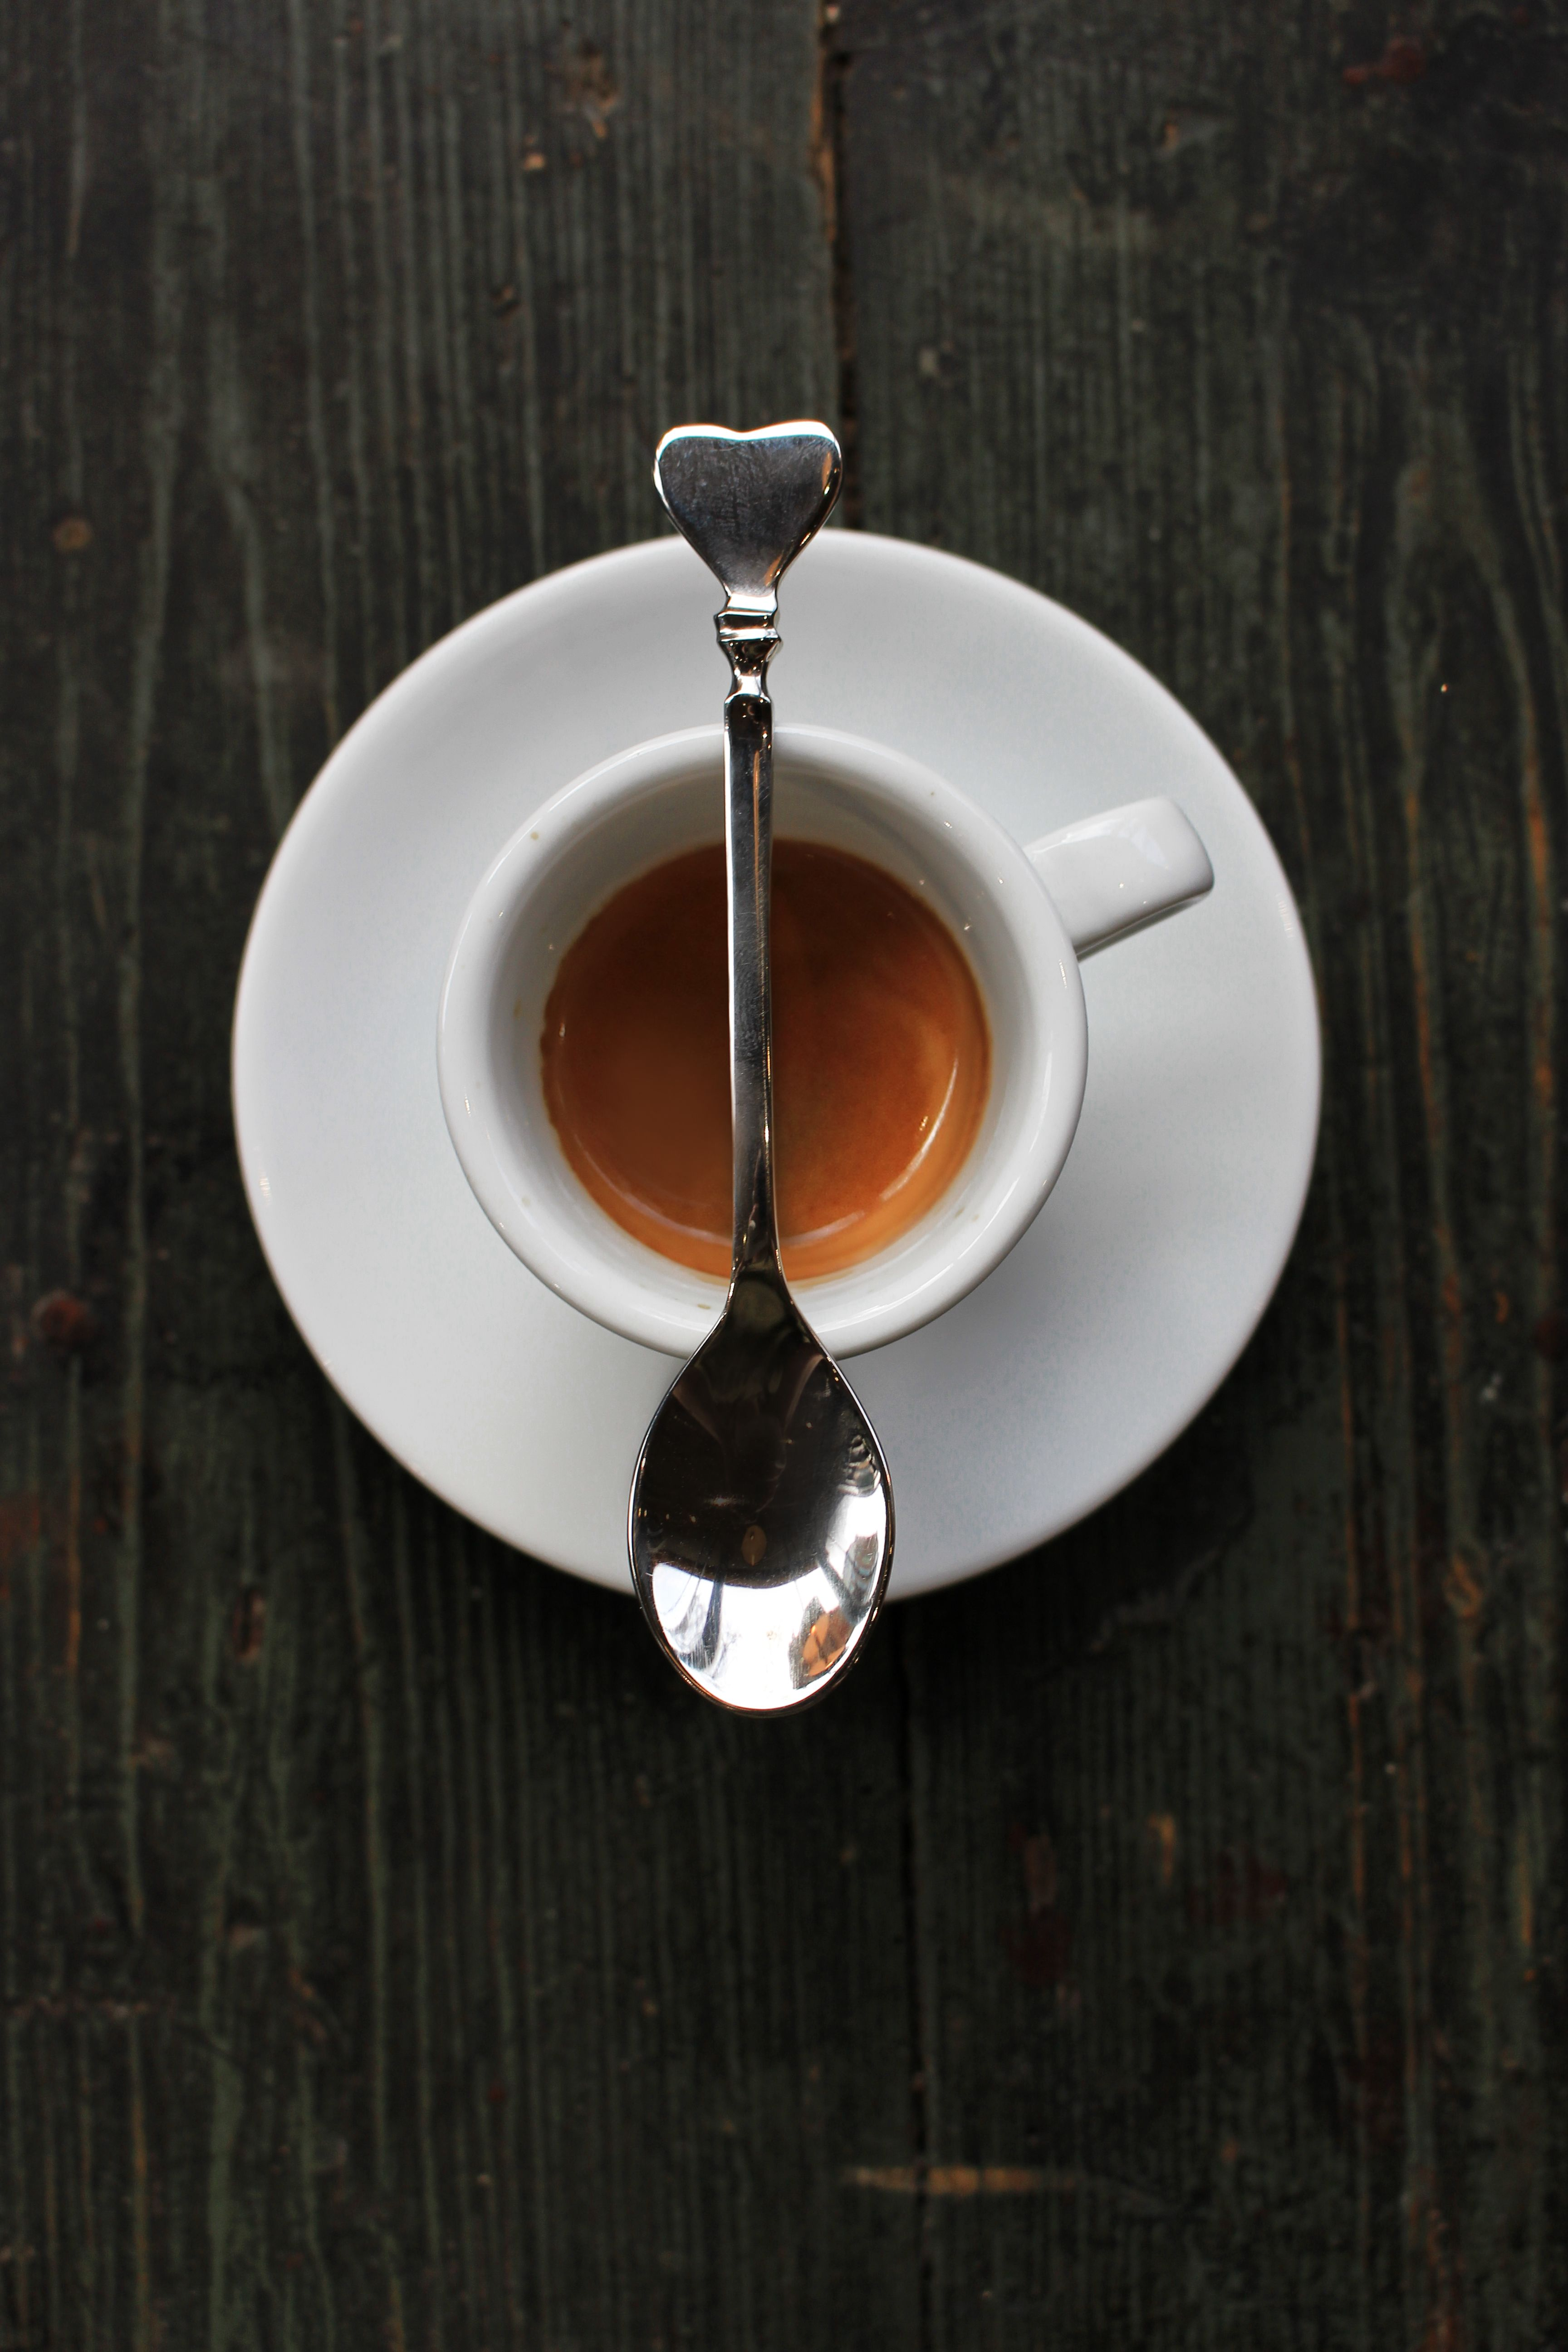 We love an espresso with a thick, hazelnut crema that persists even after you run a spoon through it - Caffe Nero.